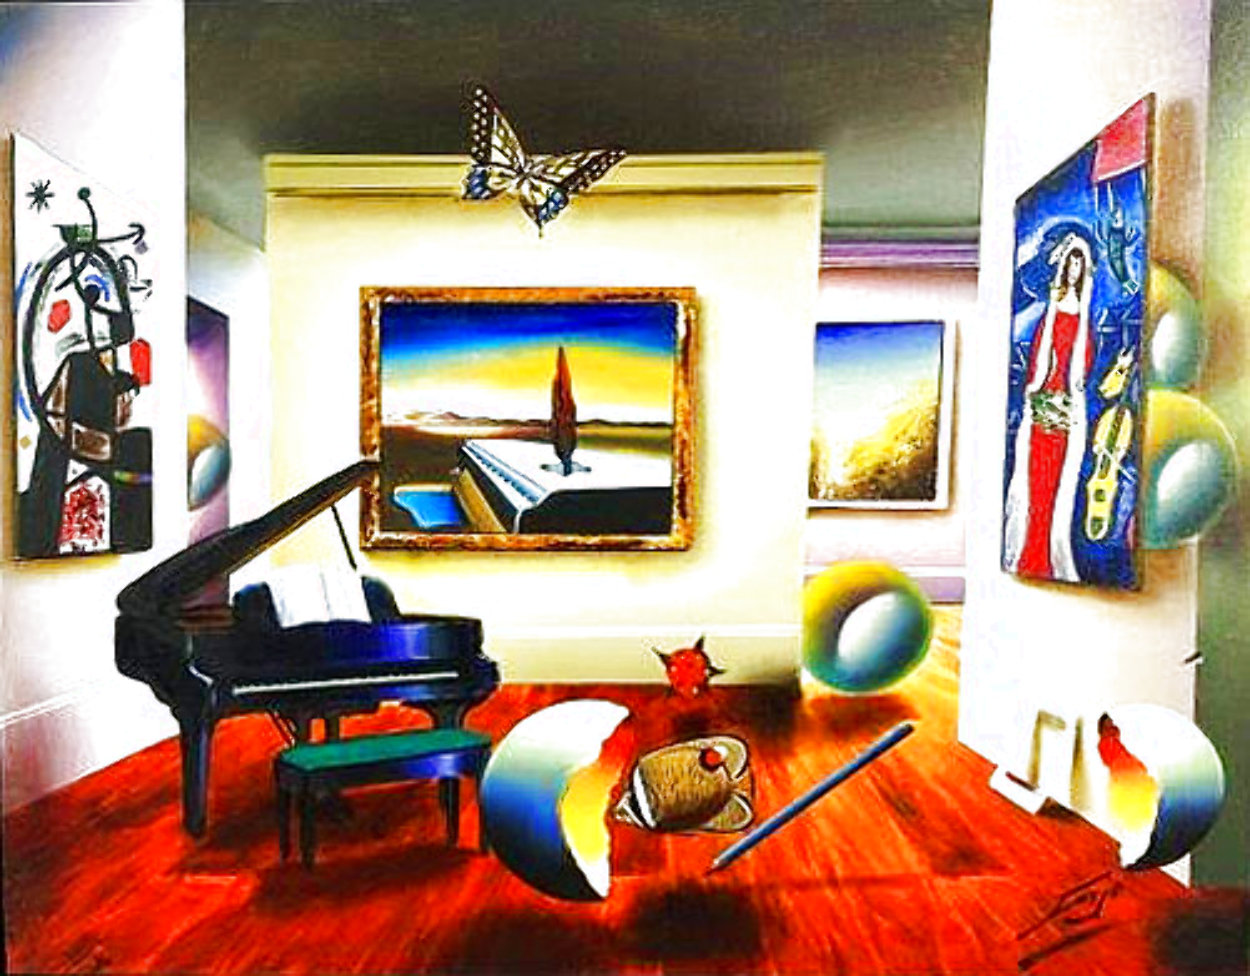 Room With the Masters 2007 32x26 Original Painting by (Fernando de Jesus Oliviera) Ferjo